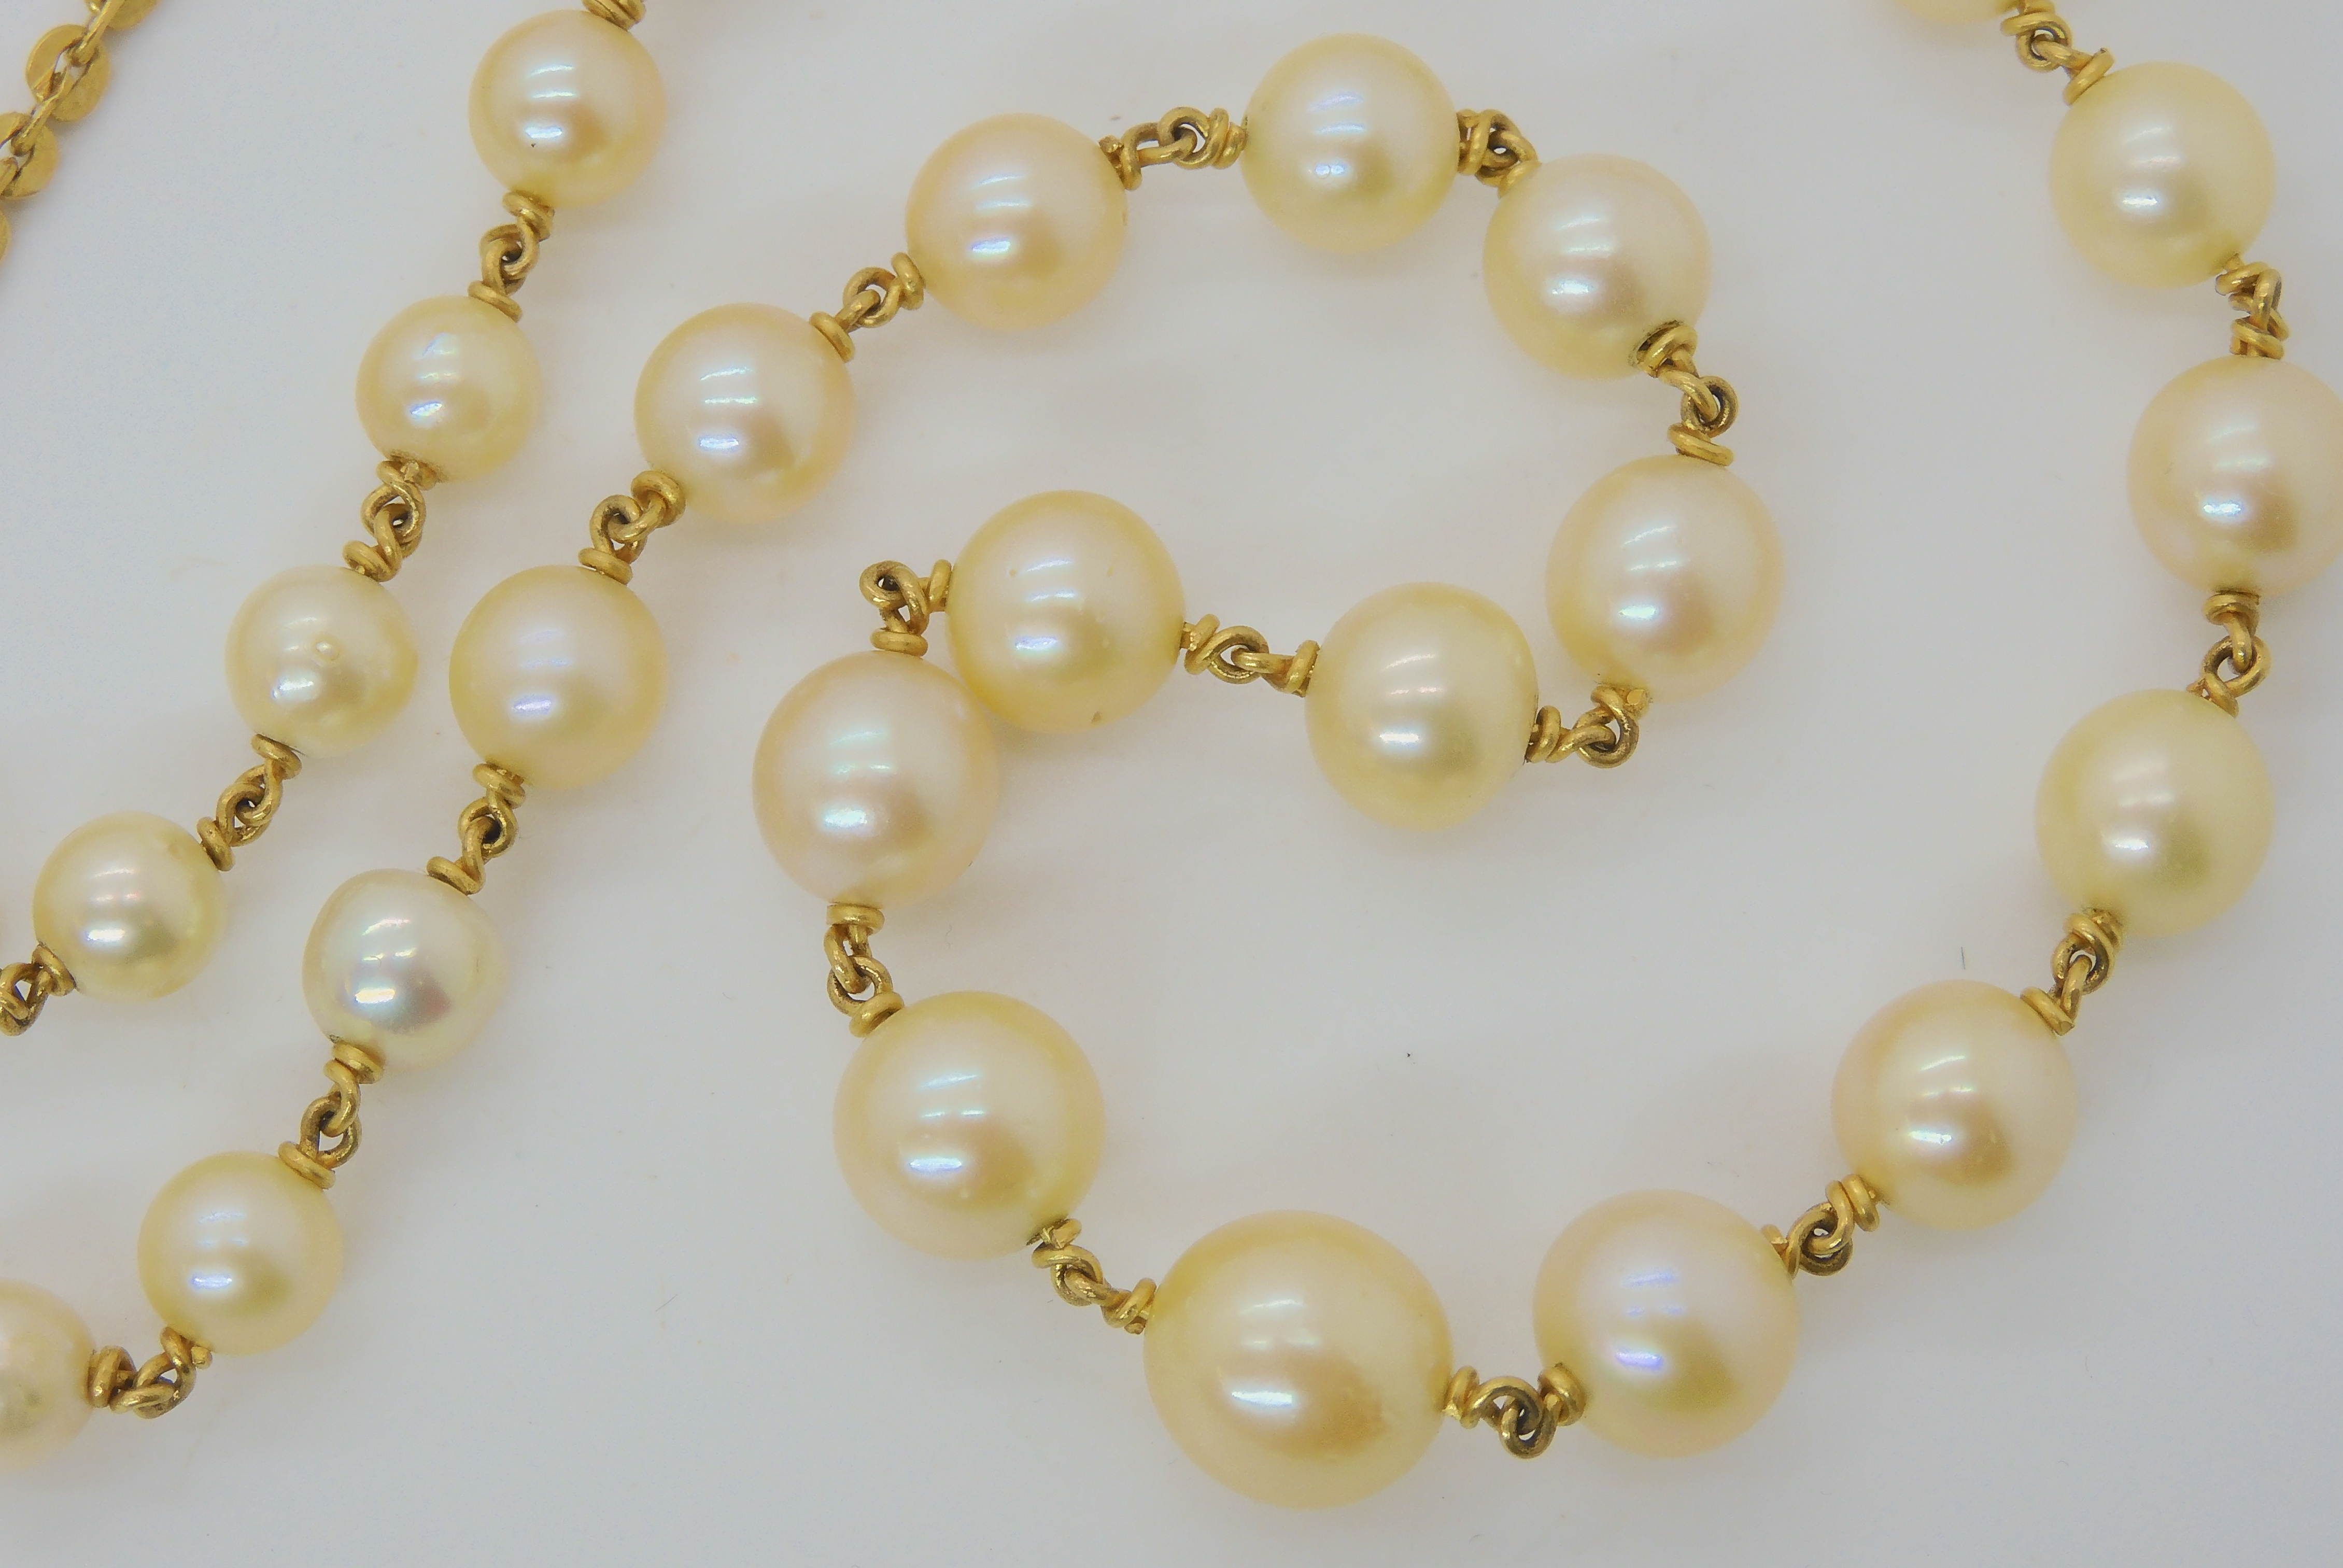 A YELLOW METAL LINKED PEARL NECKLACE largest pearl 9mm, smallest 5.6mm, length of necklace 49cm, - Image 3 of 3